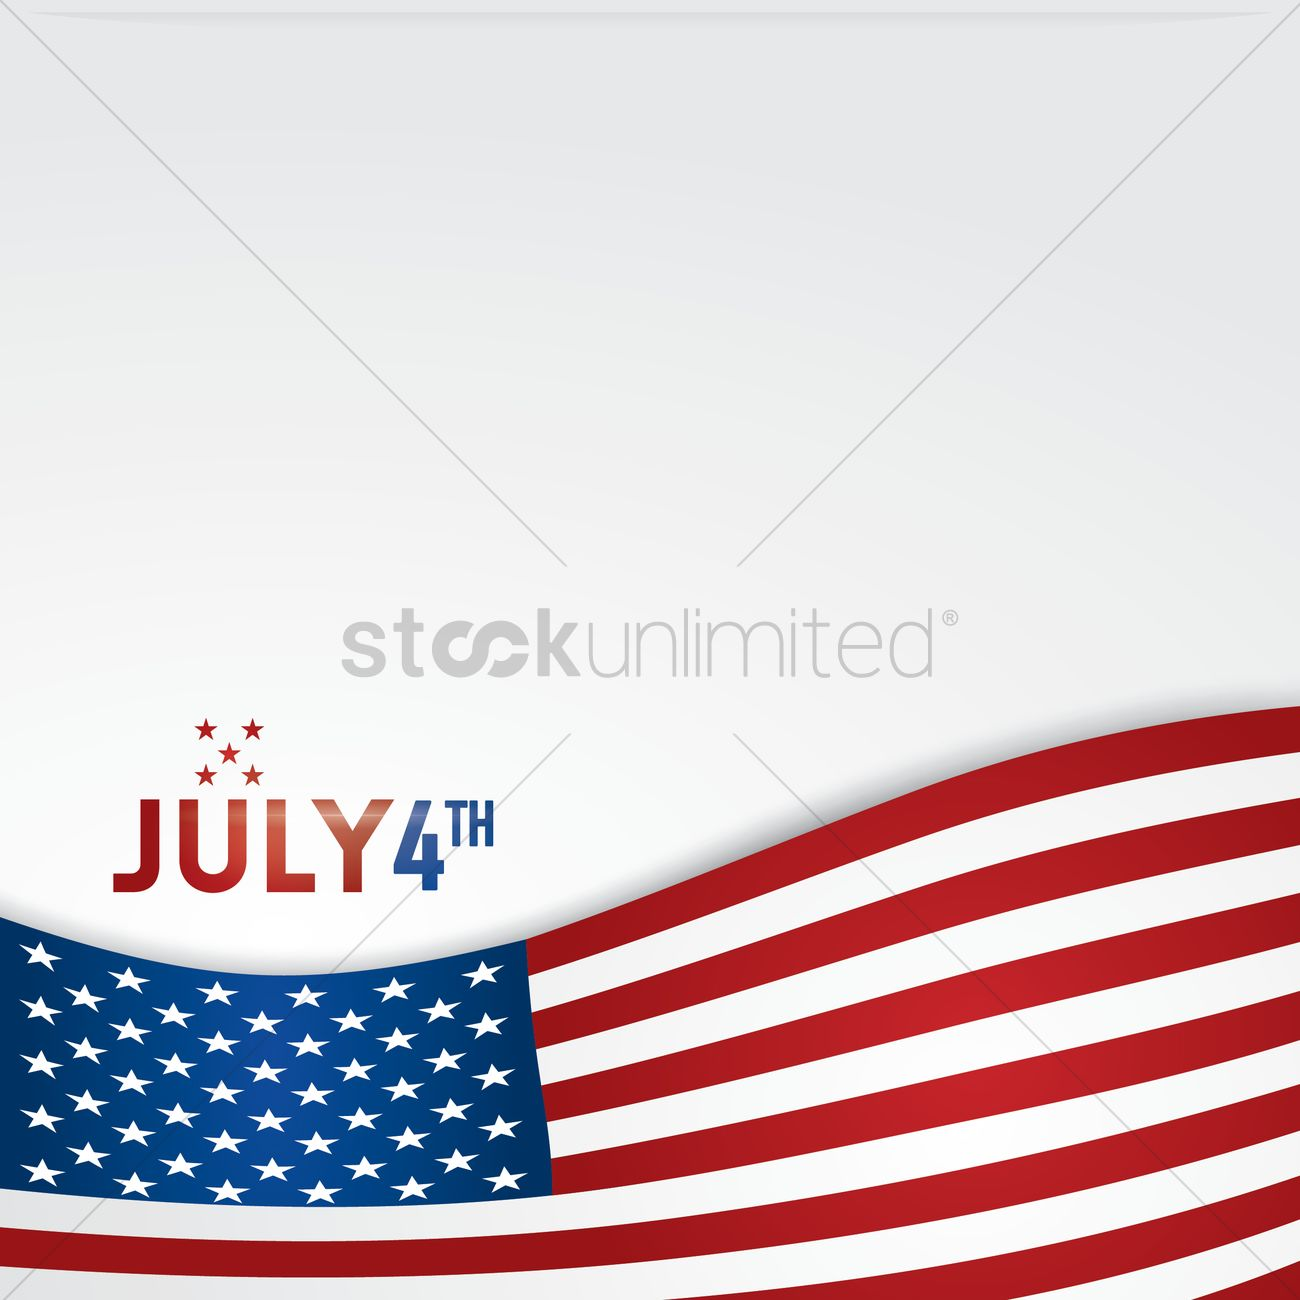 American independence day poster Vector Image - 1530538 | StockUnlimited